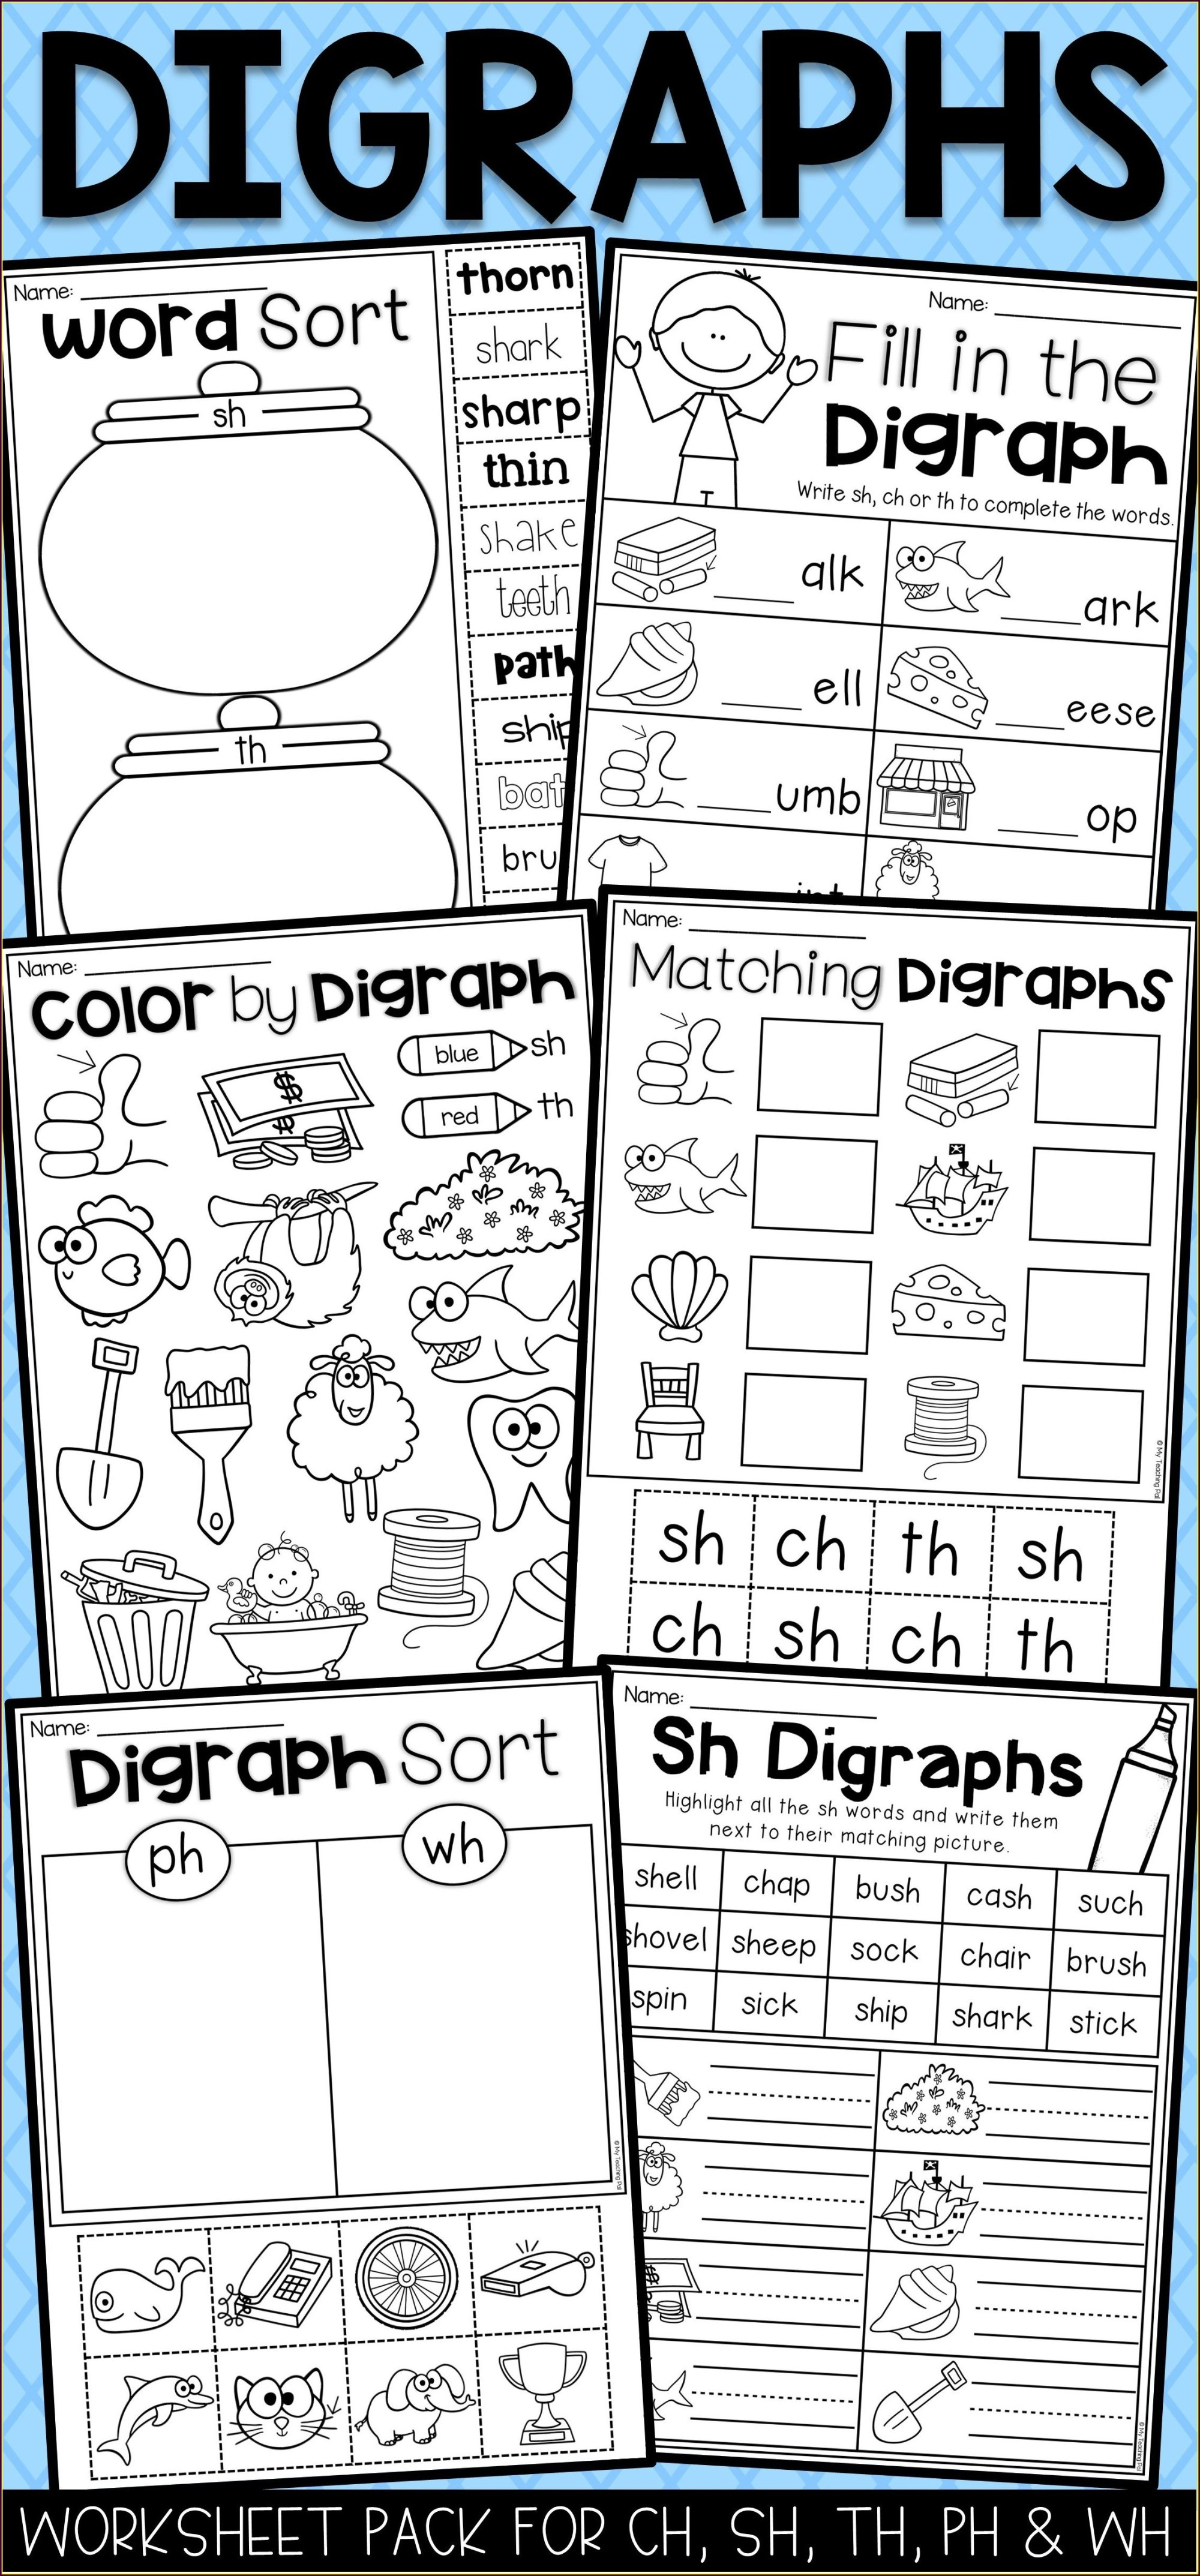 hight resolution of Digraph Ch Worksheets For First Grade   Printable Worksheets and Activities  for Teachers